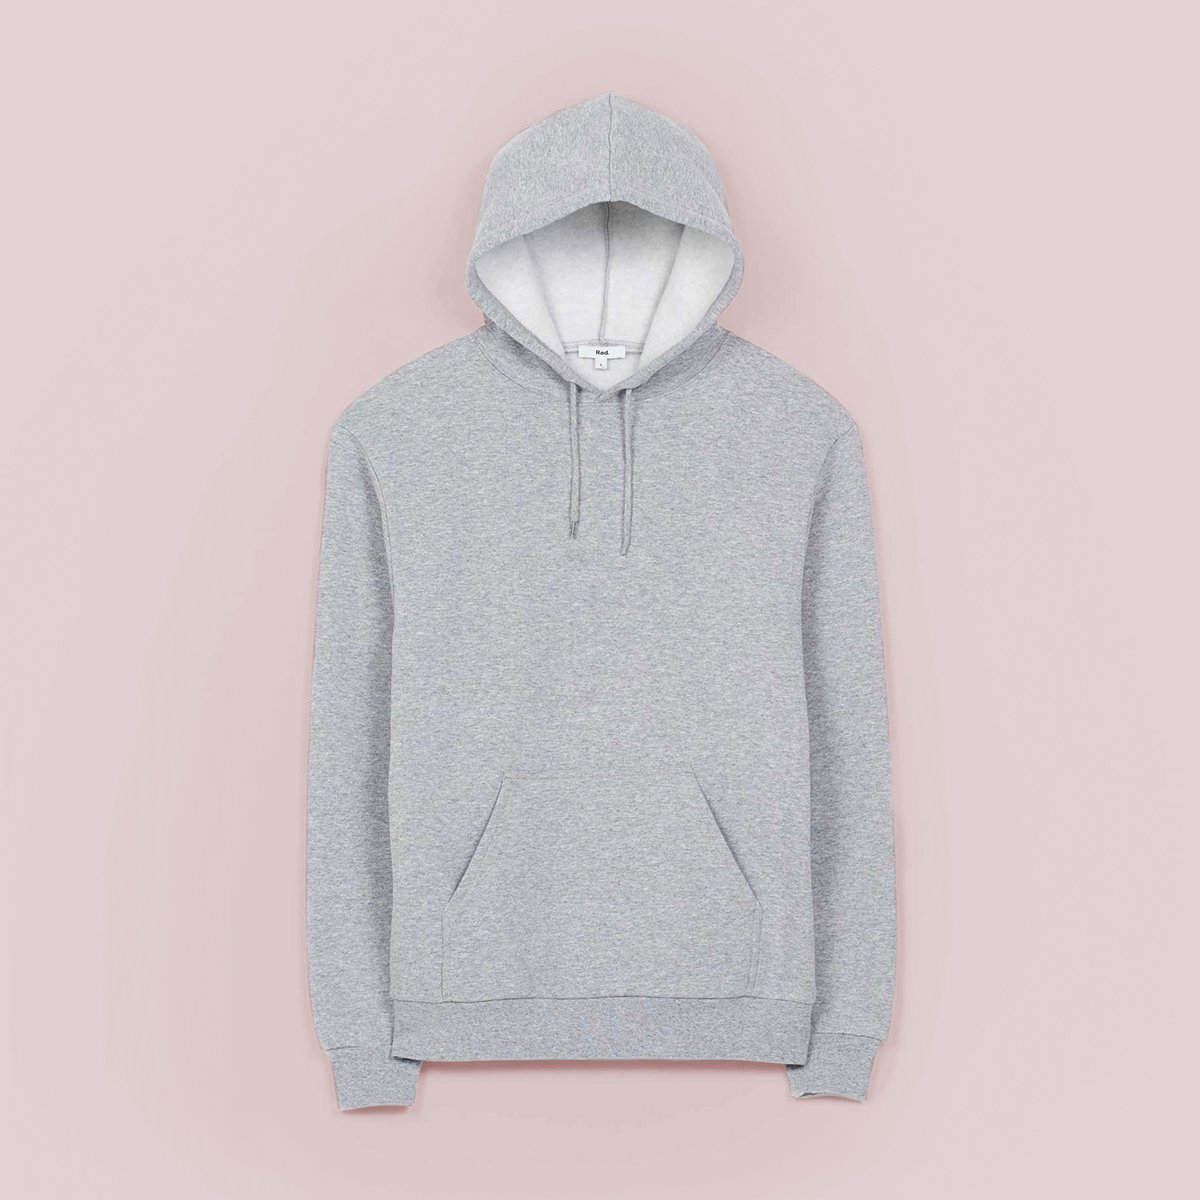 Black Friday ! Sales on our best sellers like our perfect grey hoodie https://t.co/yukEktBFyR #radshop #blackfriday https://t.co/8FgnlrLcKi